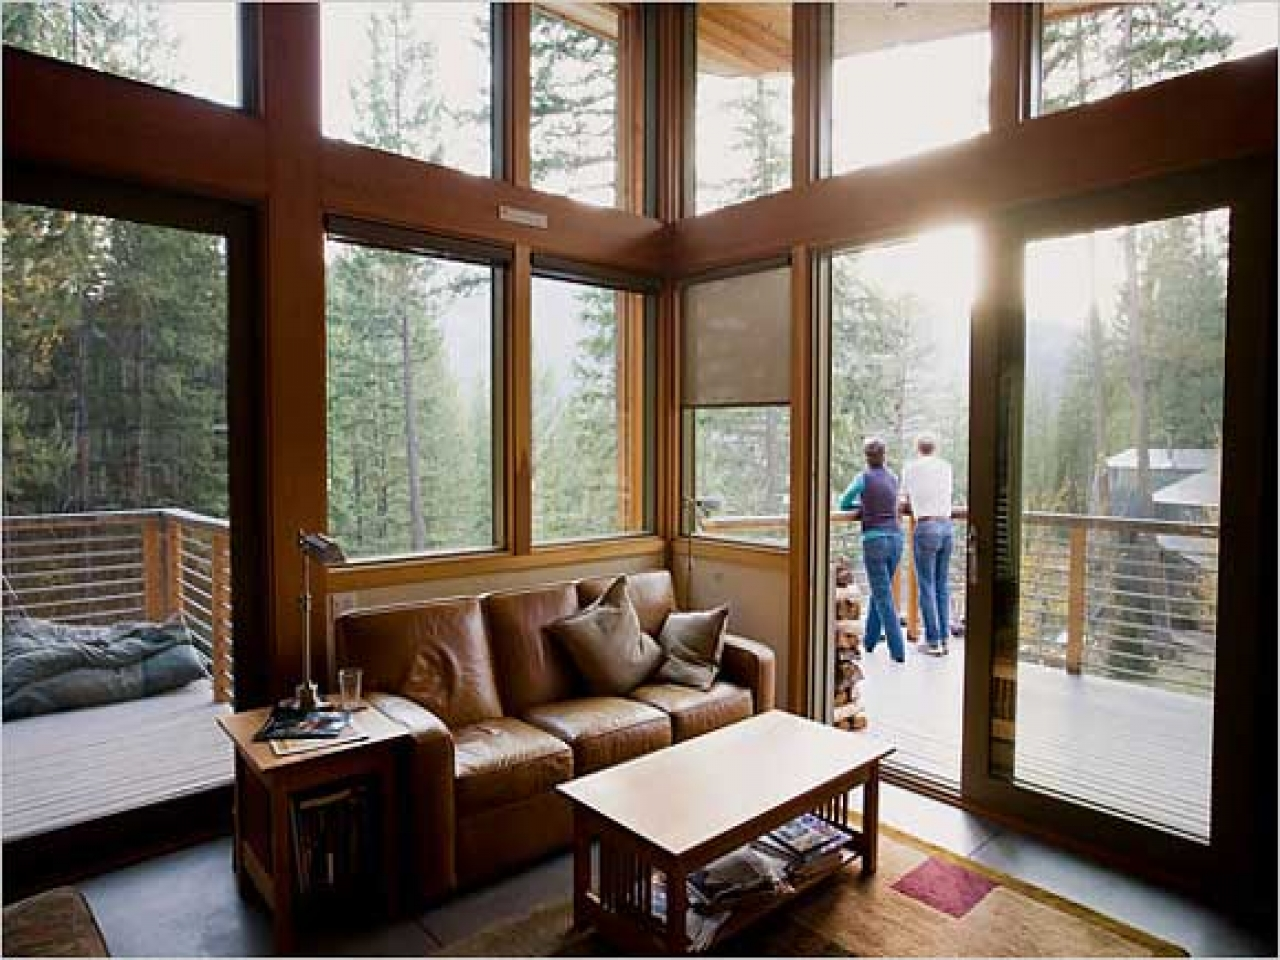 Modern Cabin Decor Modern Cabin Interior Living Room Modern Cabin Interior